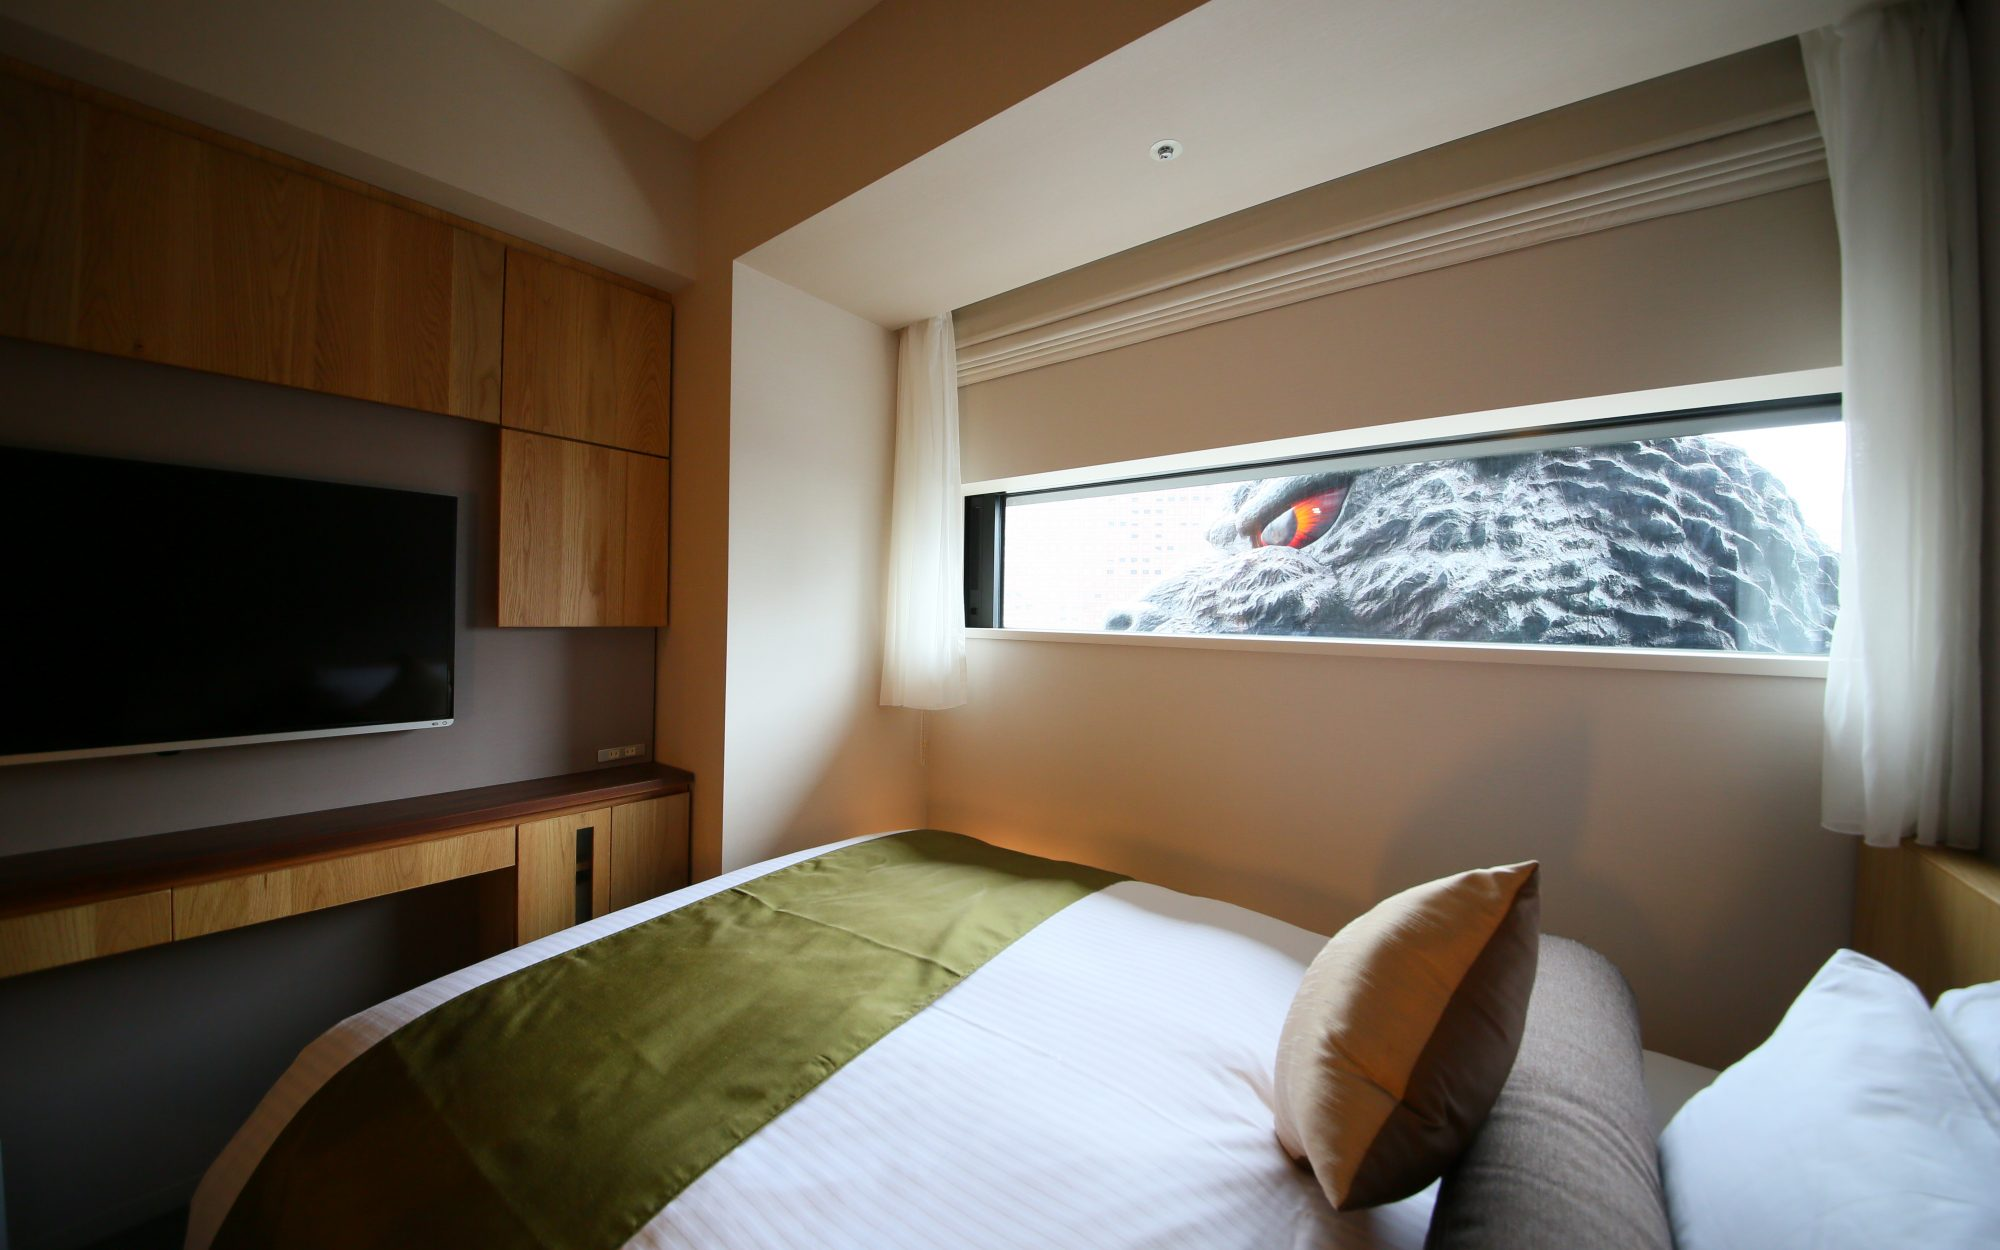 There's Now a Hotel in Tokyo with Godzilla-Themed Rooms